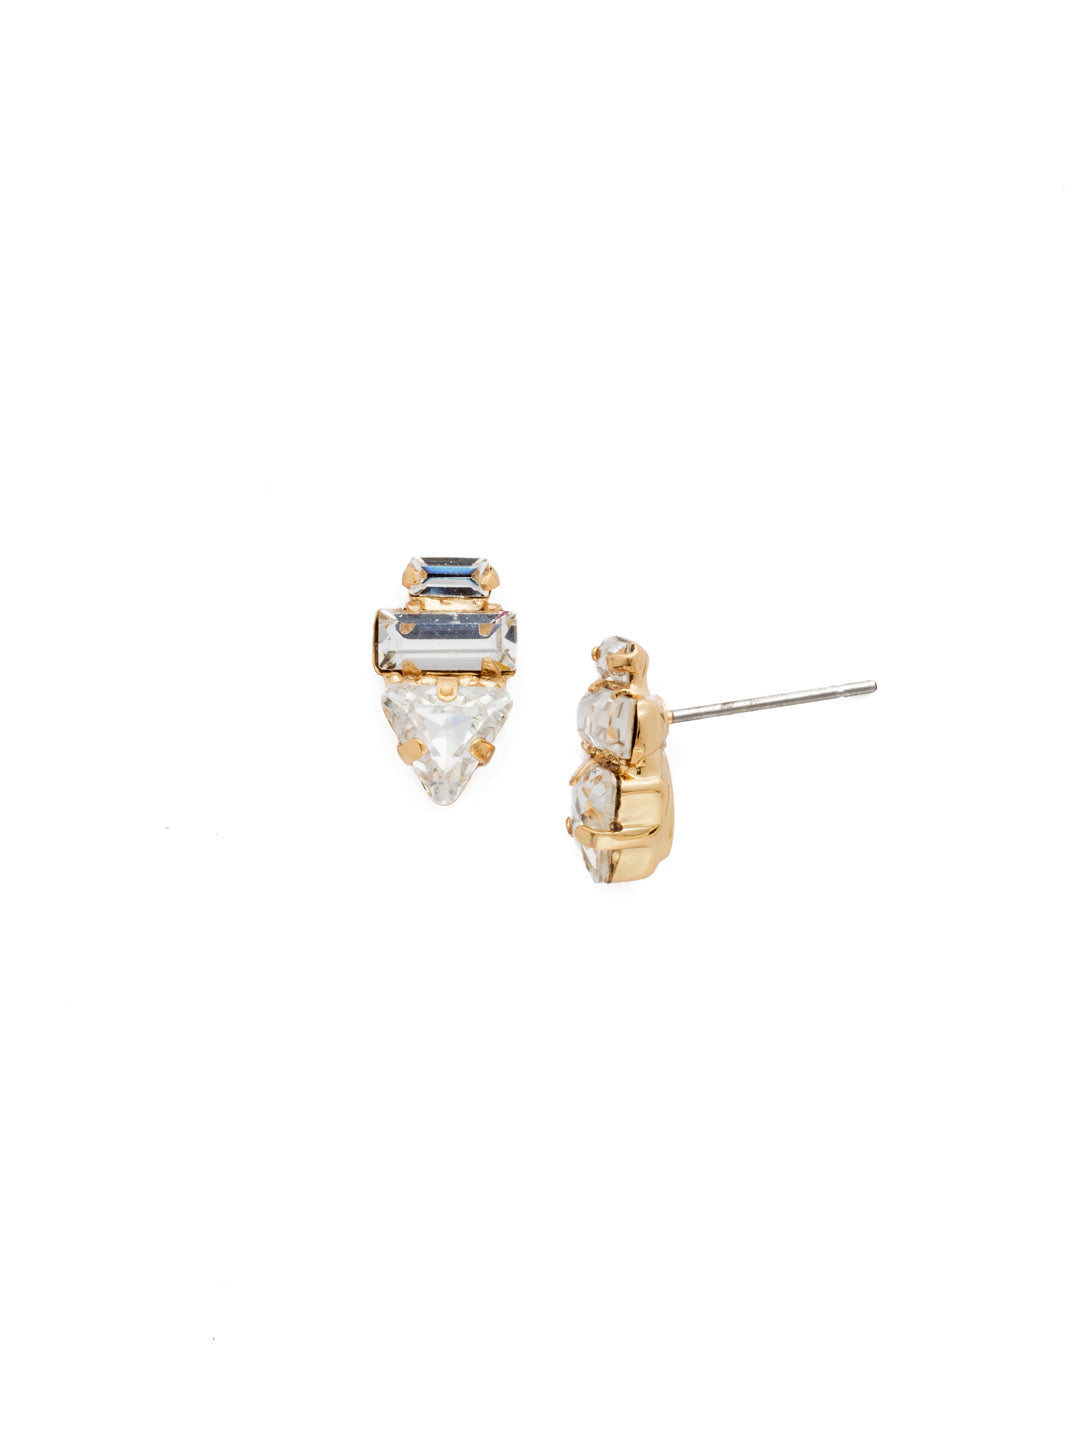 Triple Stack Stud Earrings - EDN104BGCRY